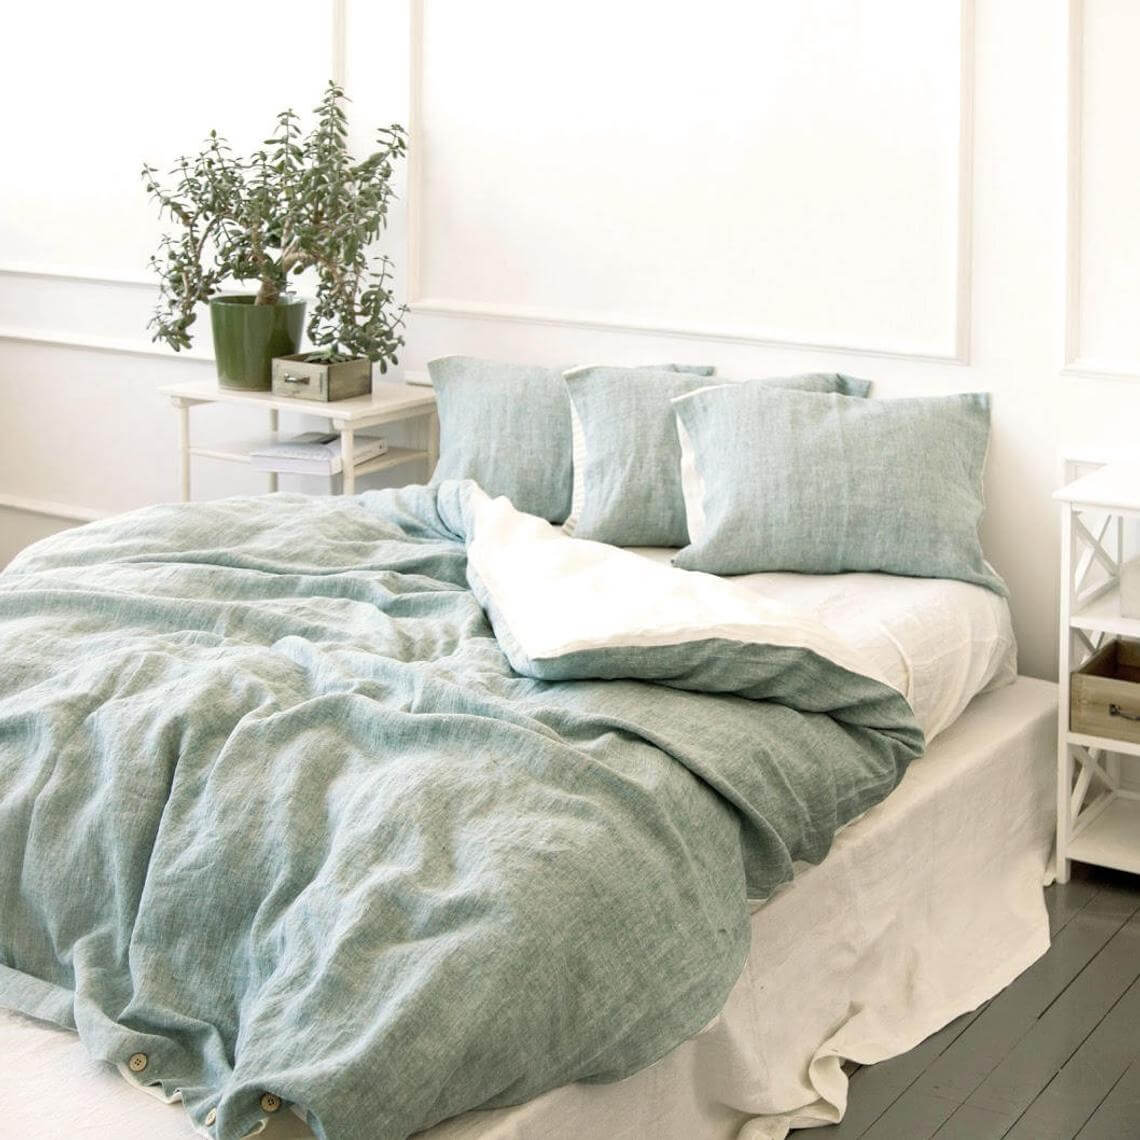 Mint Green Chambray Bedding with Matching Pillows